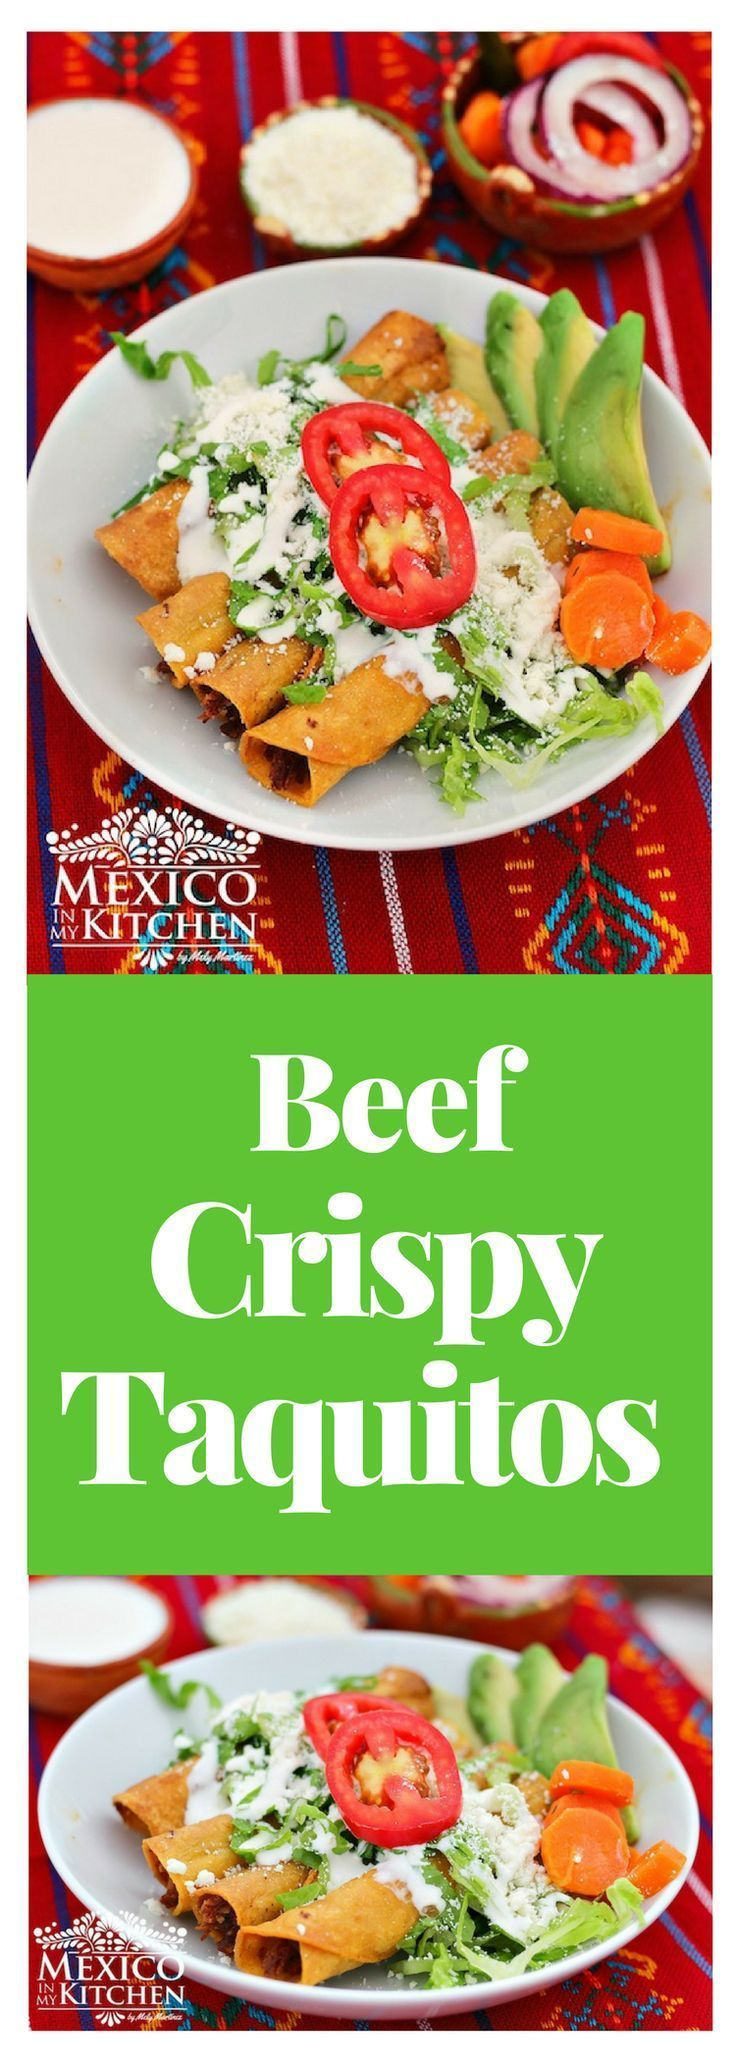 Beef crispy taquitos │In some parts of Mexico these tacos are made using a thin long oval-shaped corn tortillas and deep fried in lard #recipe #tacos #mexican #mexicoinmykitchen